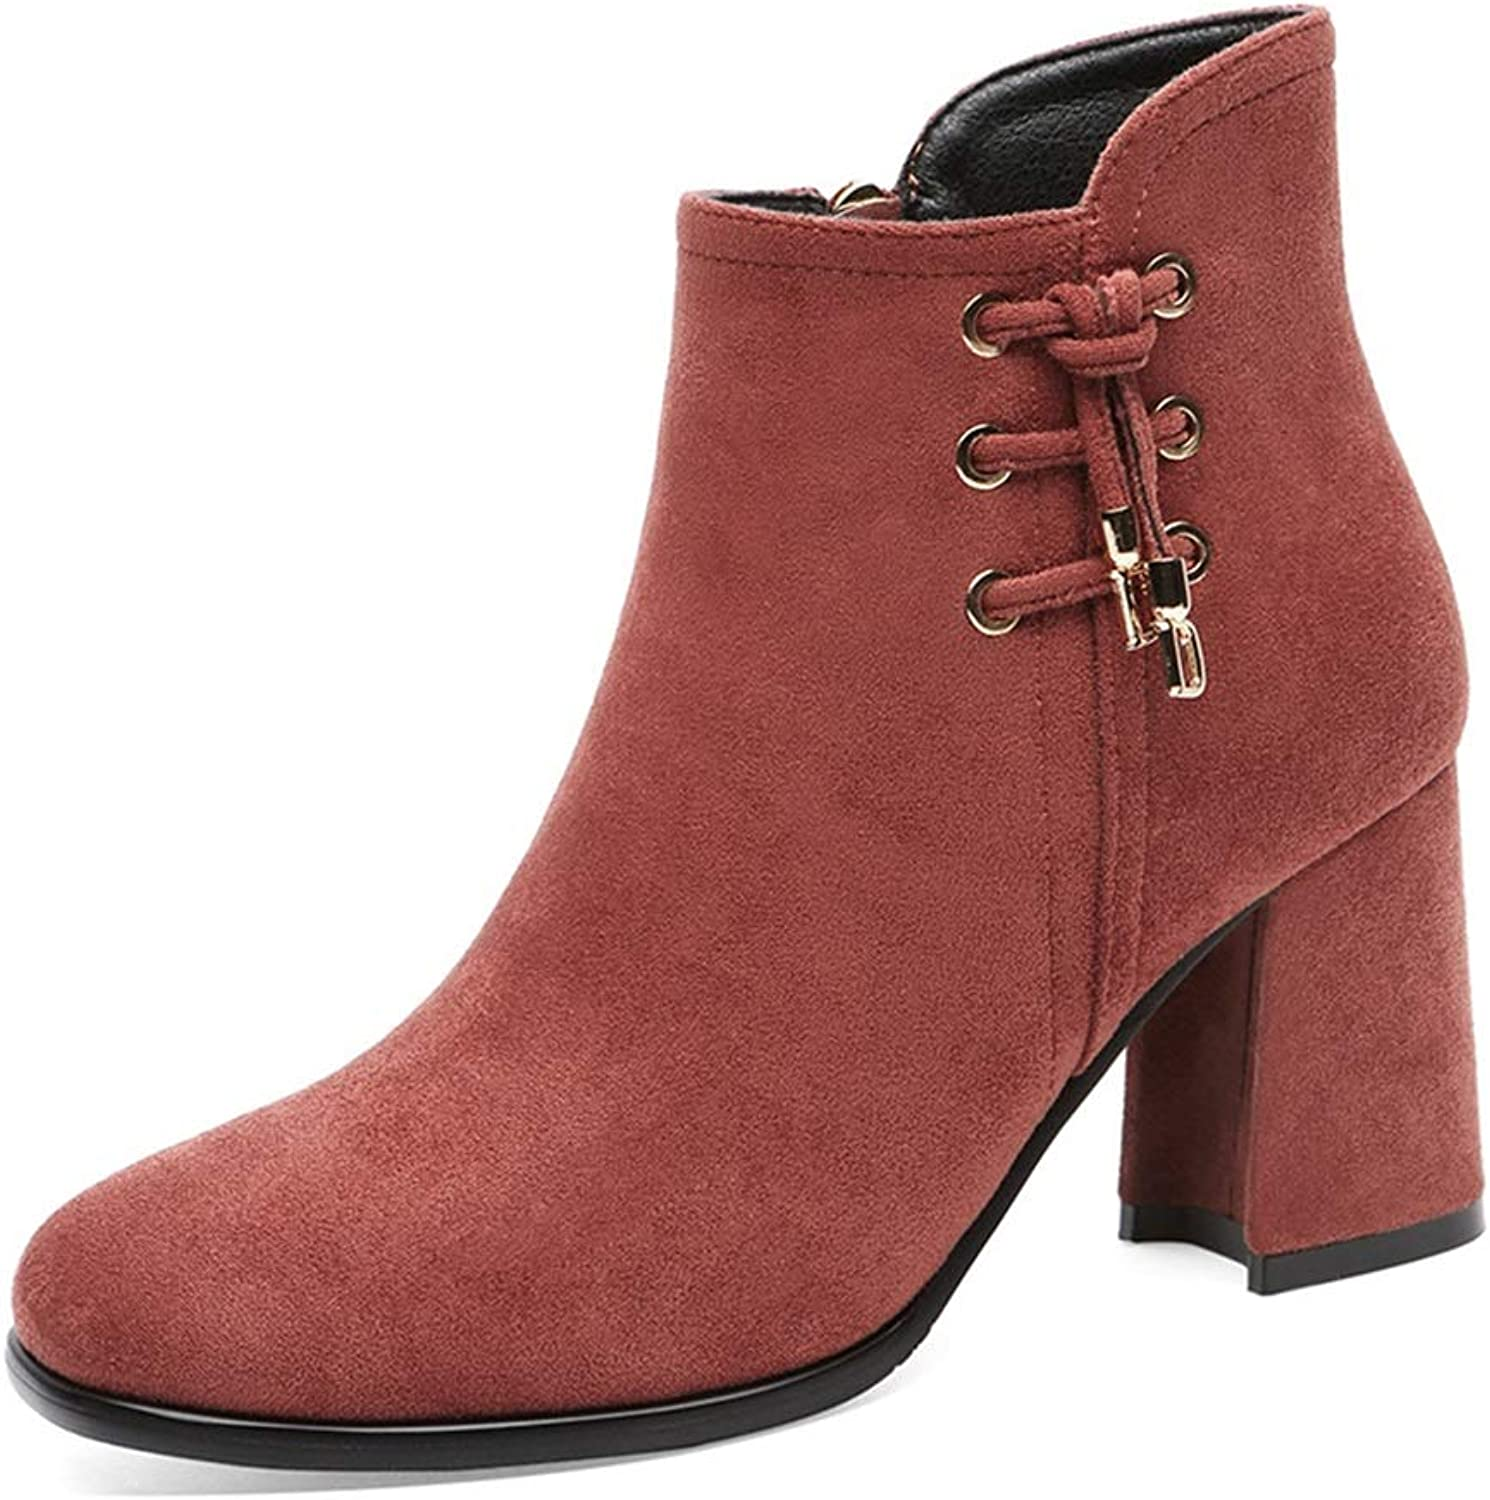 Ladies Booties, High Heel Thick Heel Plus Velvet Square Head Suede Women's Boots Fall Winter Side Zipper Fashion Boots (color   B, Size   38)